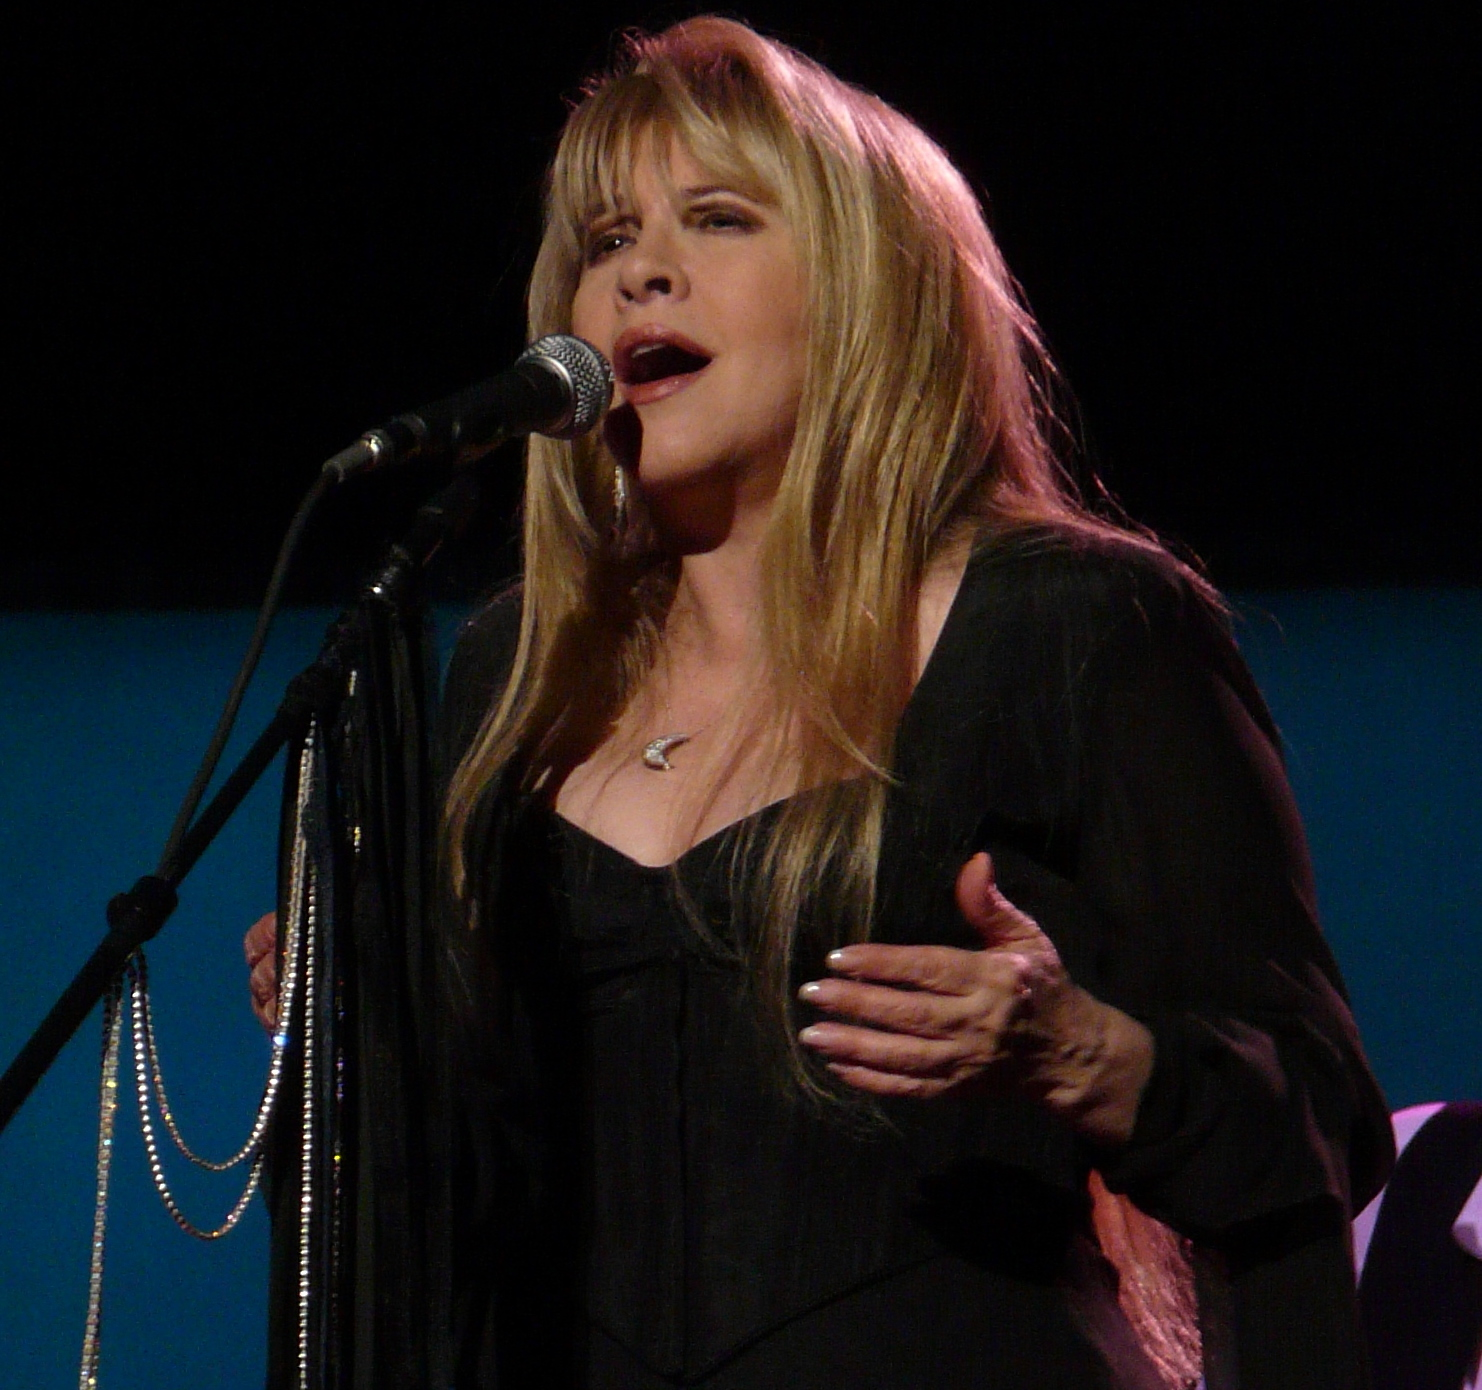 Stevie Nicks, 2009; image by Matt Becker